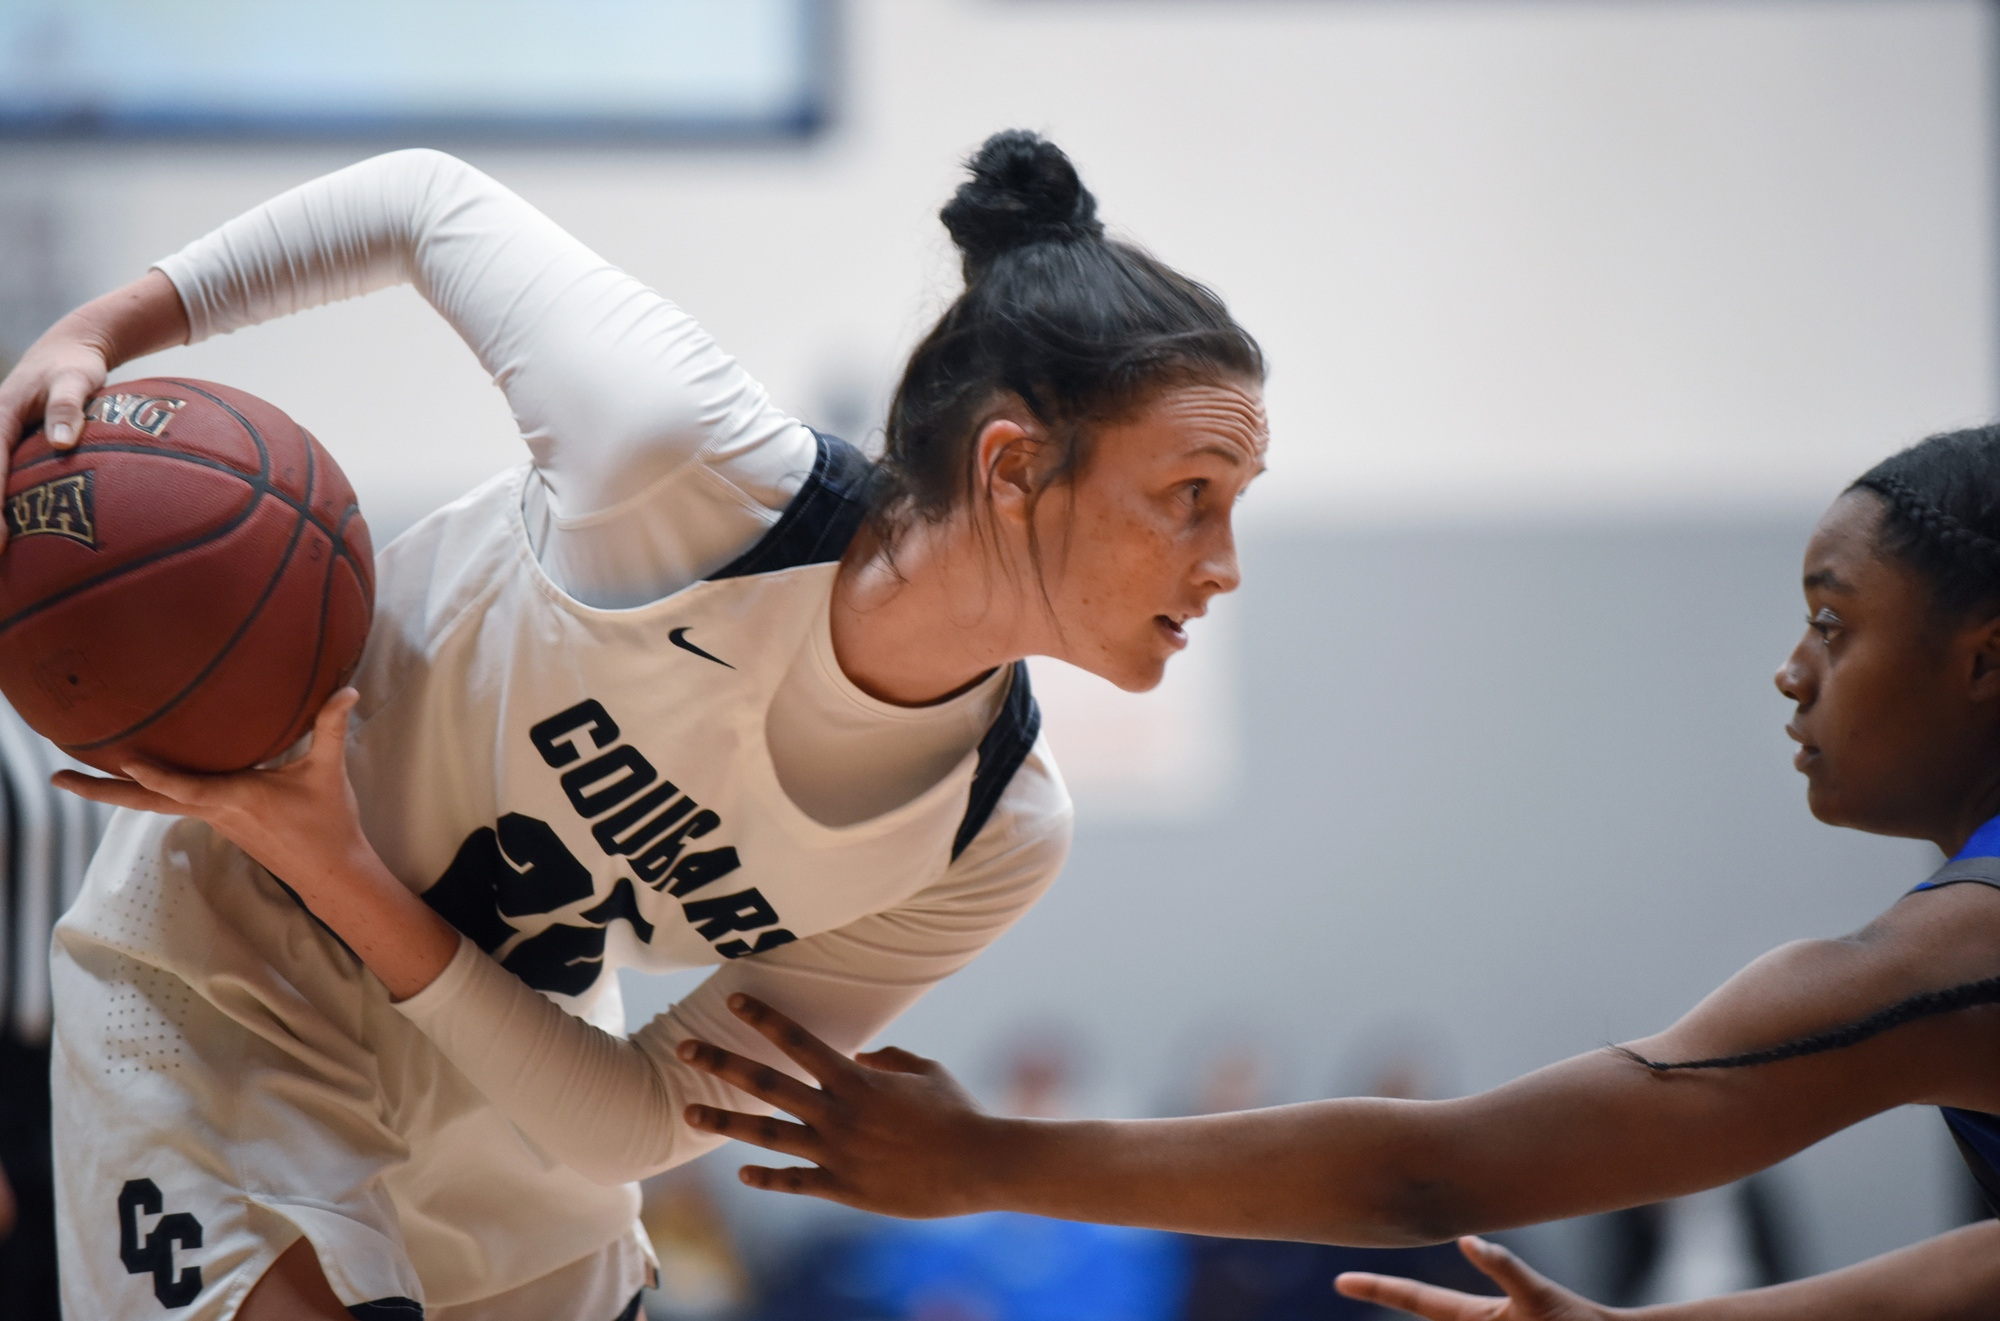 Columbia College guard Jordan Alford faces down Central Baptist's Antoinette Shrepee on Wednesday Feb. 27, 2019 at the Southwell Complex in Columbia. The Cougars faced off against the Mustangs in the first round of the American Midwest Conference tournament.